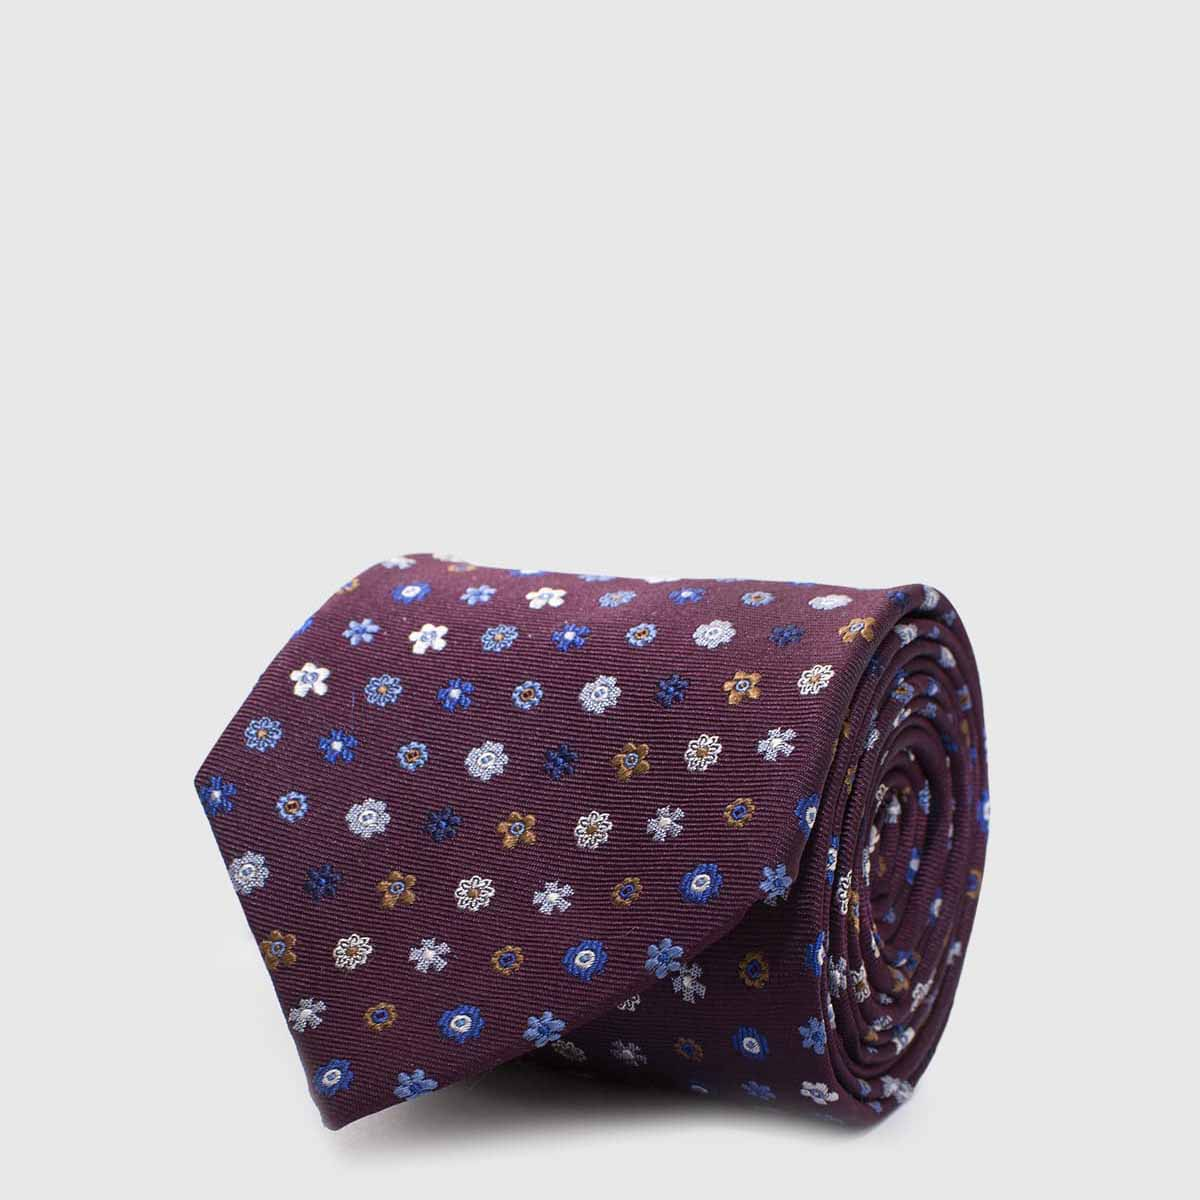 Bordeaux 5 Folds Tie with flowers of various colors